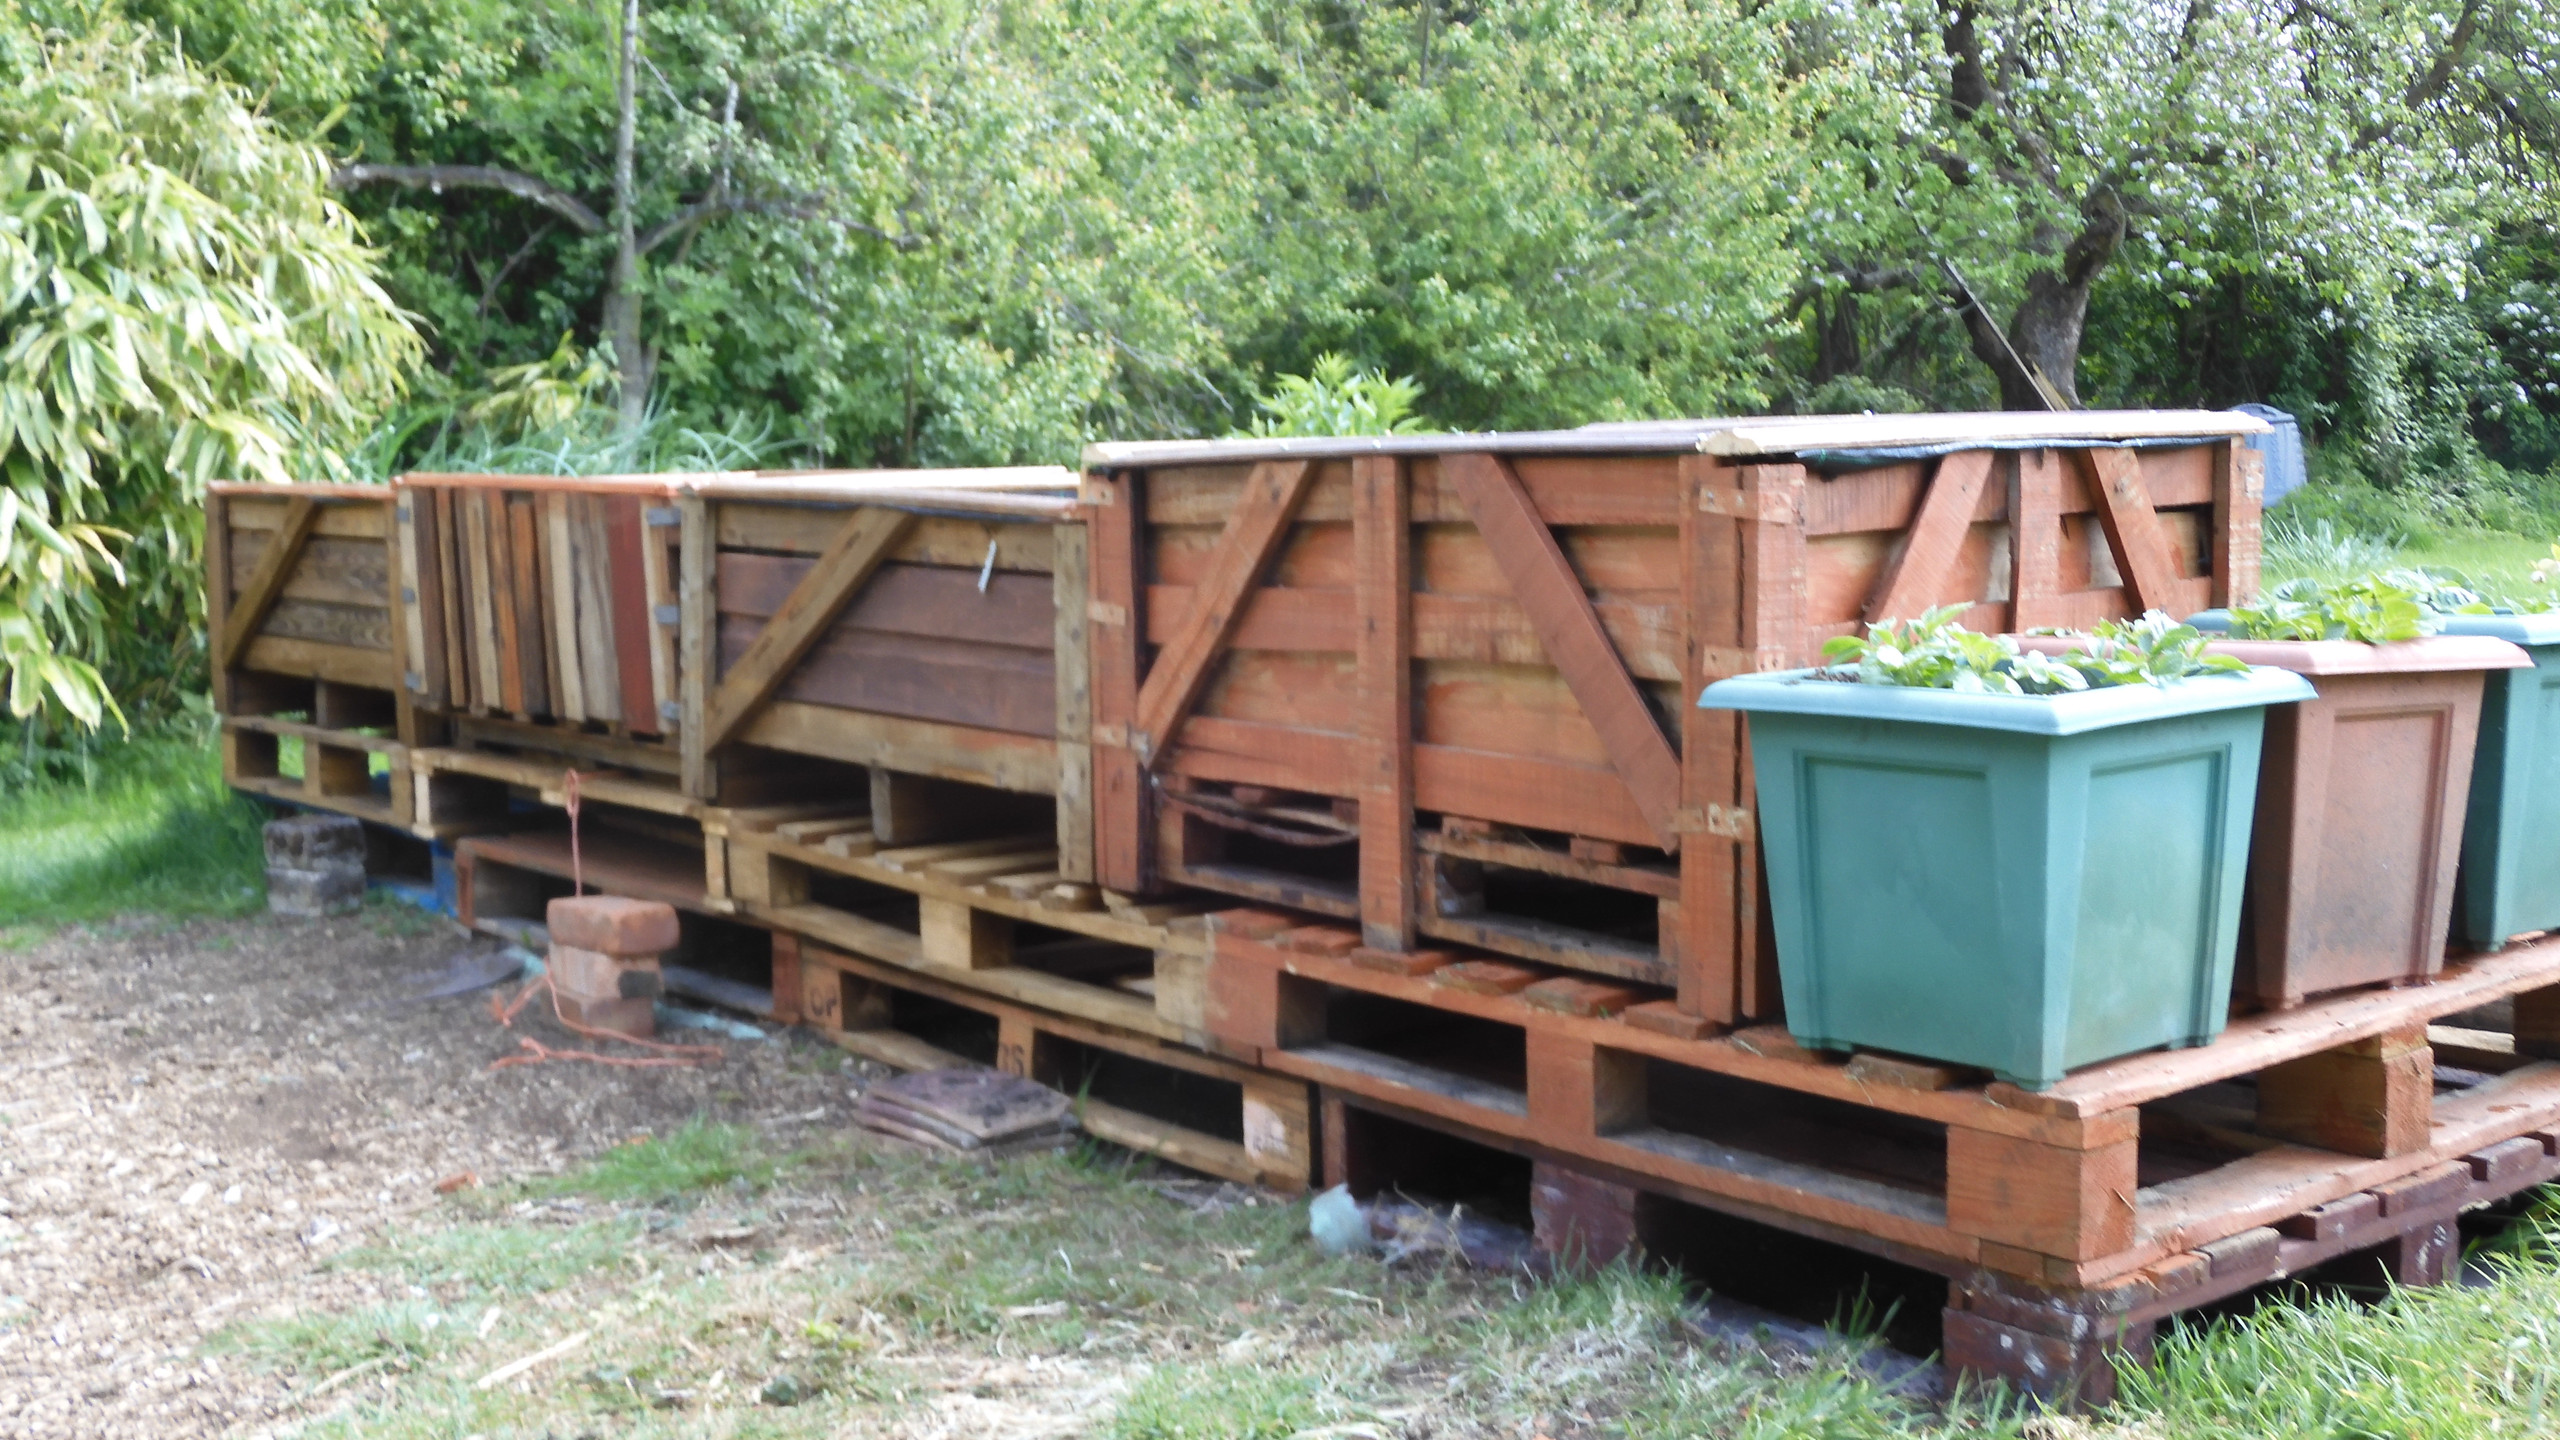 Crates on pallets